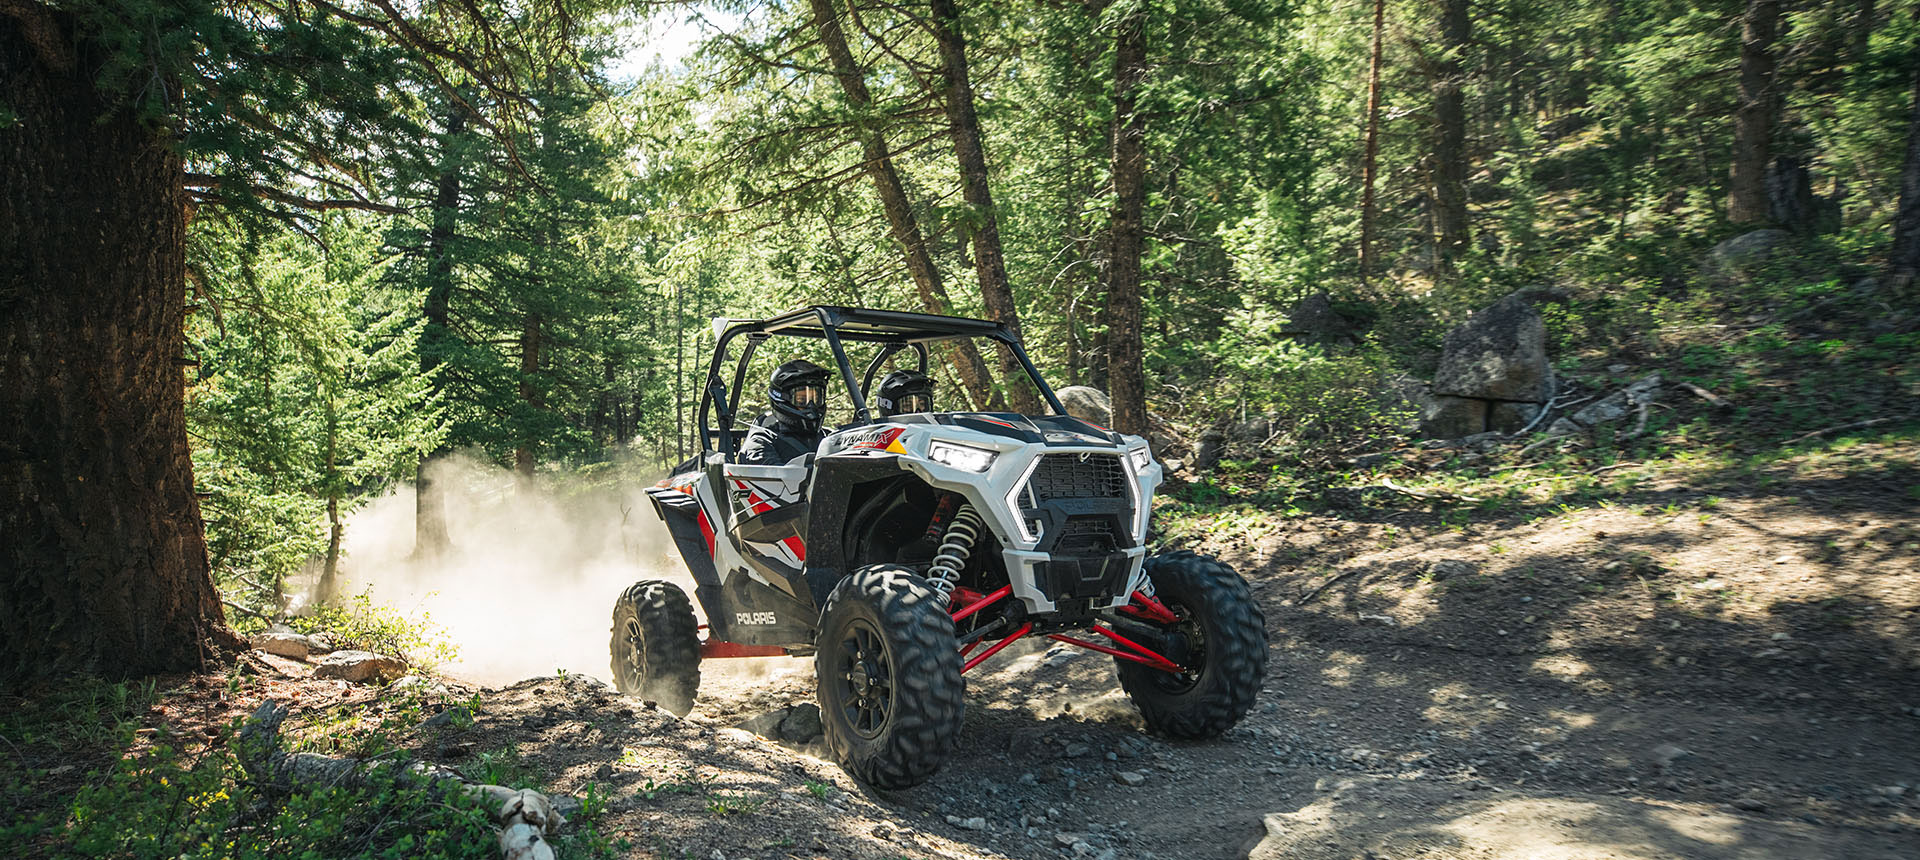 2019 Polaris RZR XP 1000 in Freeport, Florida - Photo 9